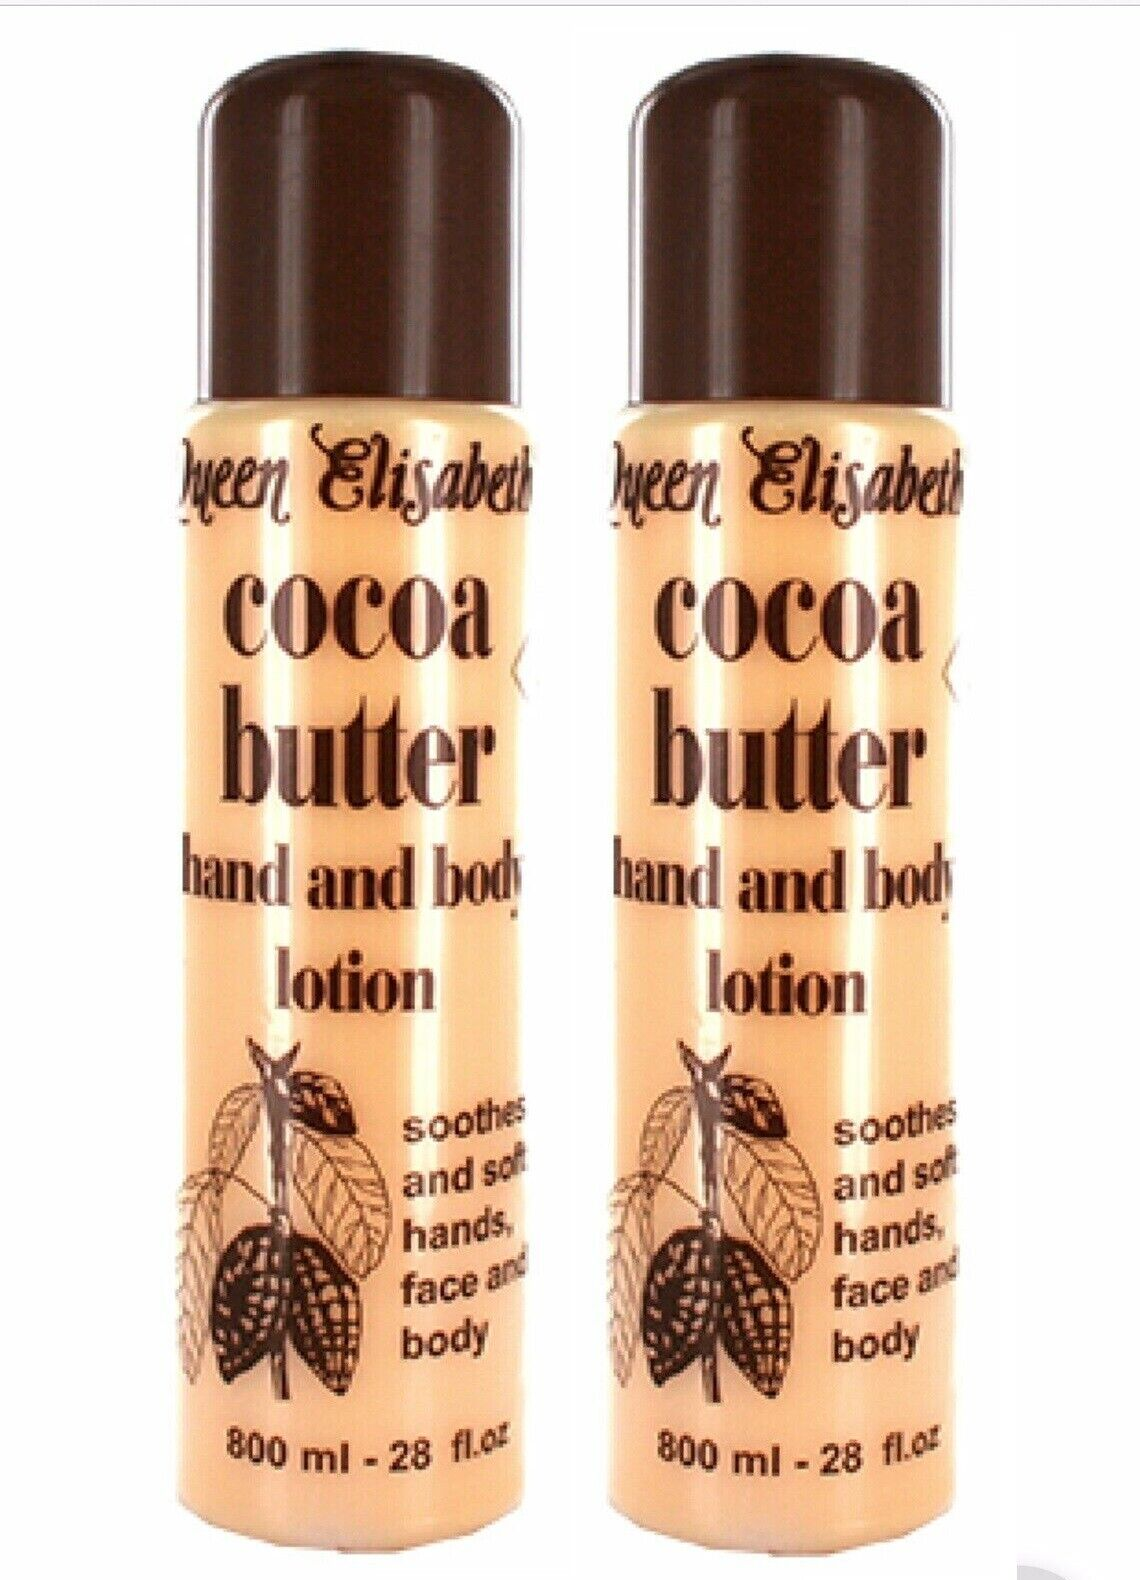 cocoa butter hand and body lotion 800ml